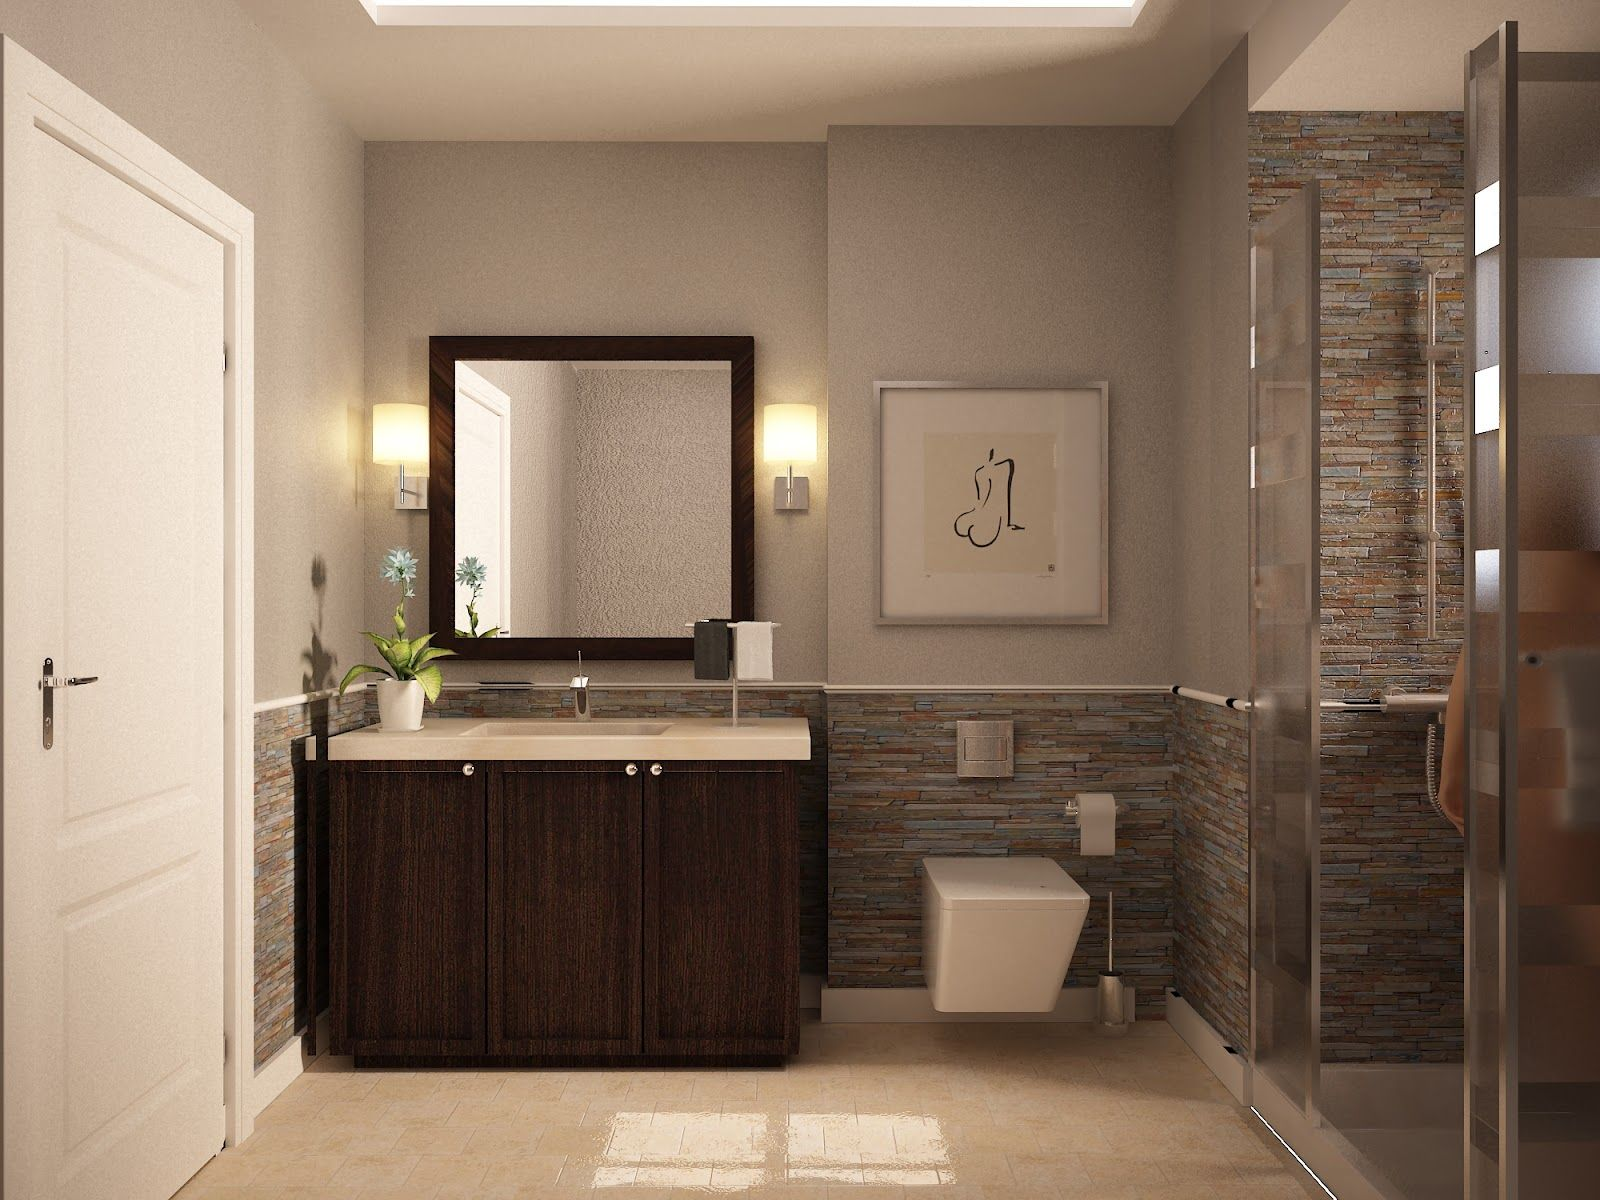 Small Bathroom Design Ideas Color Schemes contemporary teal bathroom wall color scheme with wooden shelves above toilet as Bathroom Colors For A Bathroom Decorating Interior Homes Compact Bathroom Colors For A Small Bathroom Fascinating Bathroom Colors Bathroom Bathroom Colors